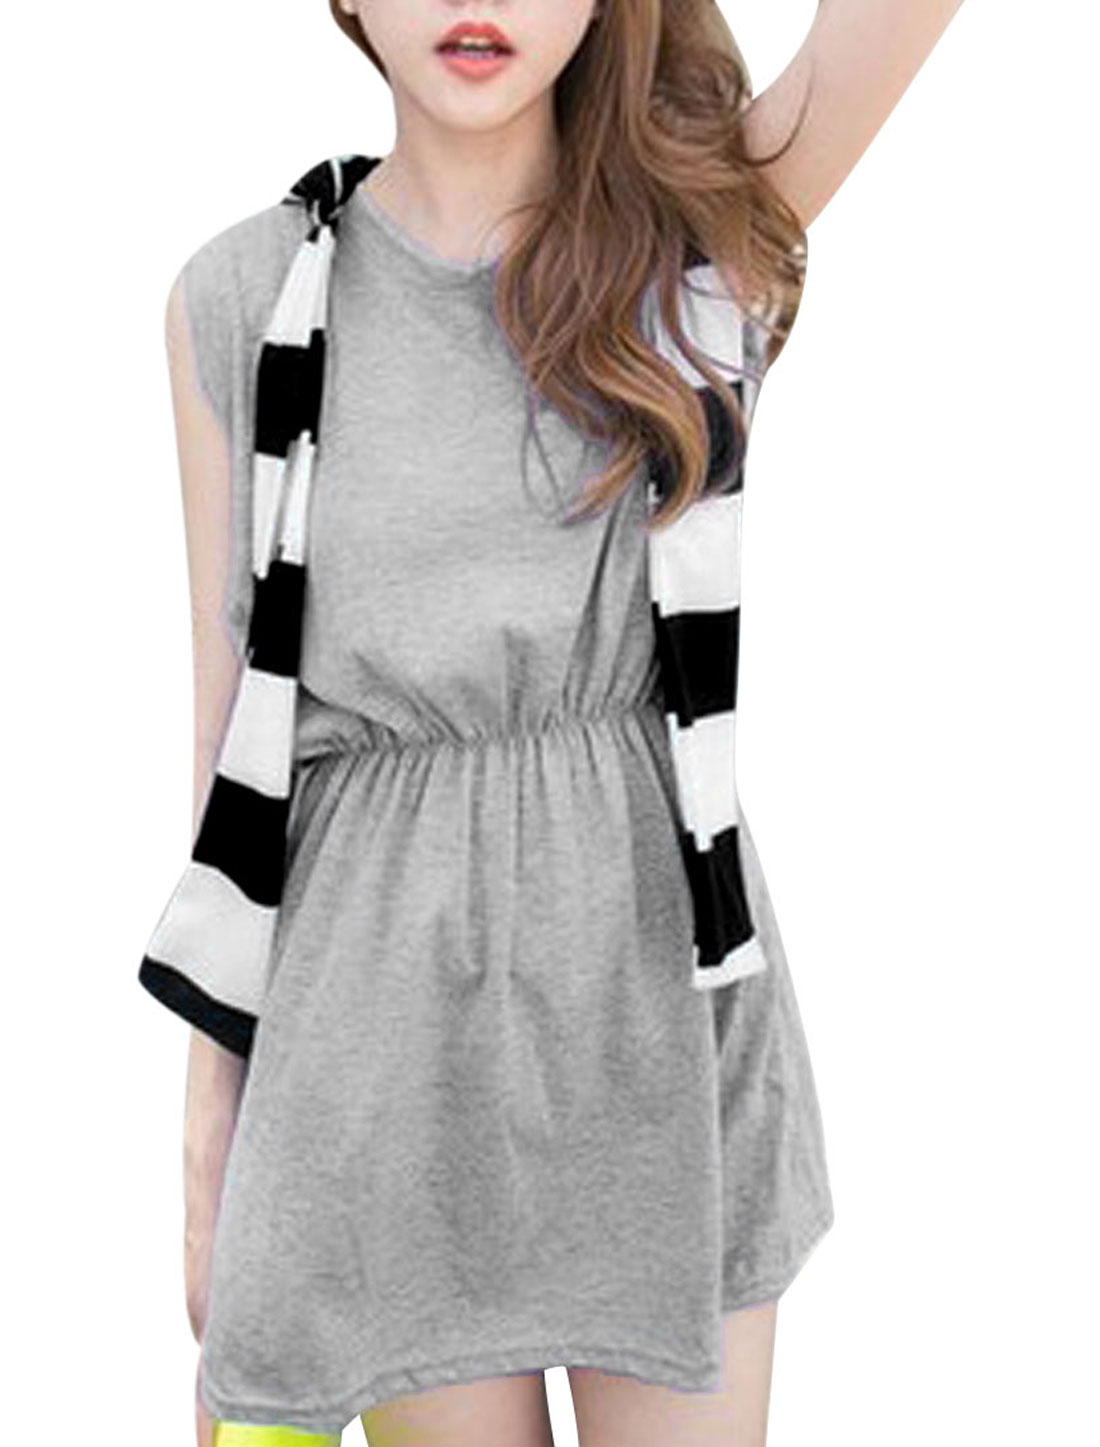 Women's Round Neck Layered Design Elastic Waist Gray XS Gray Dress